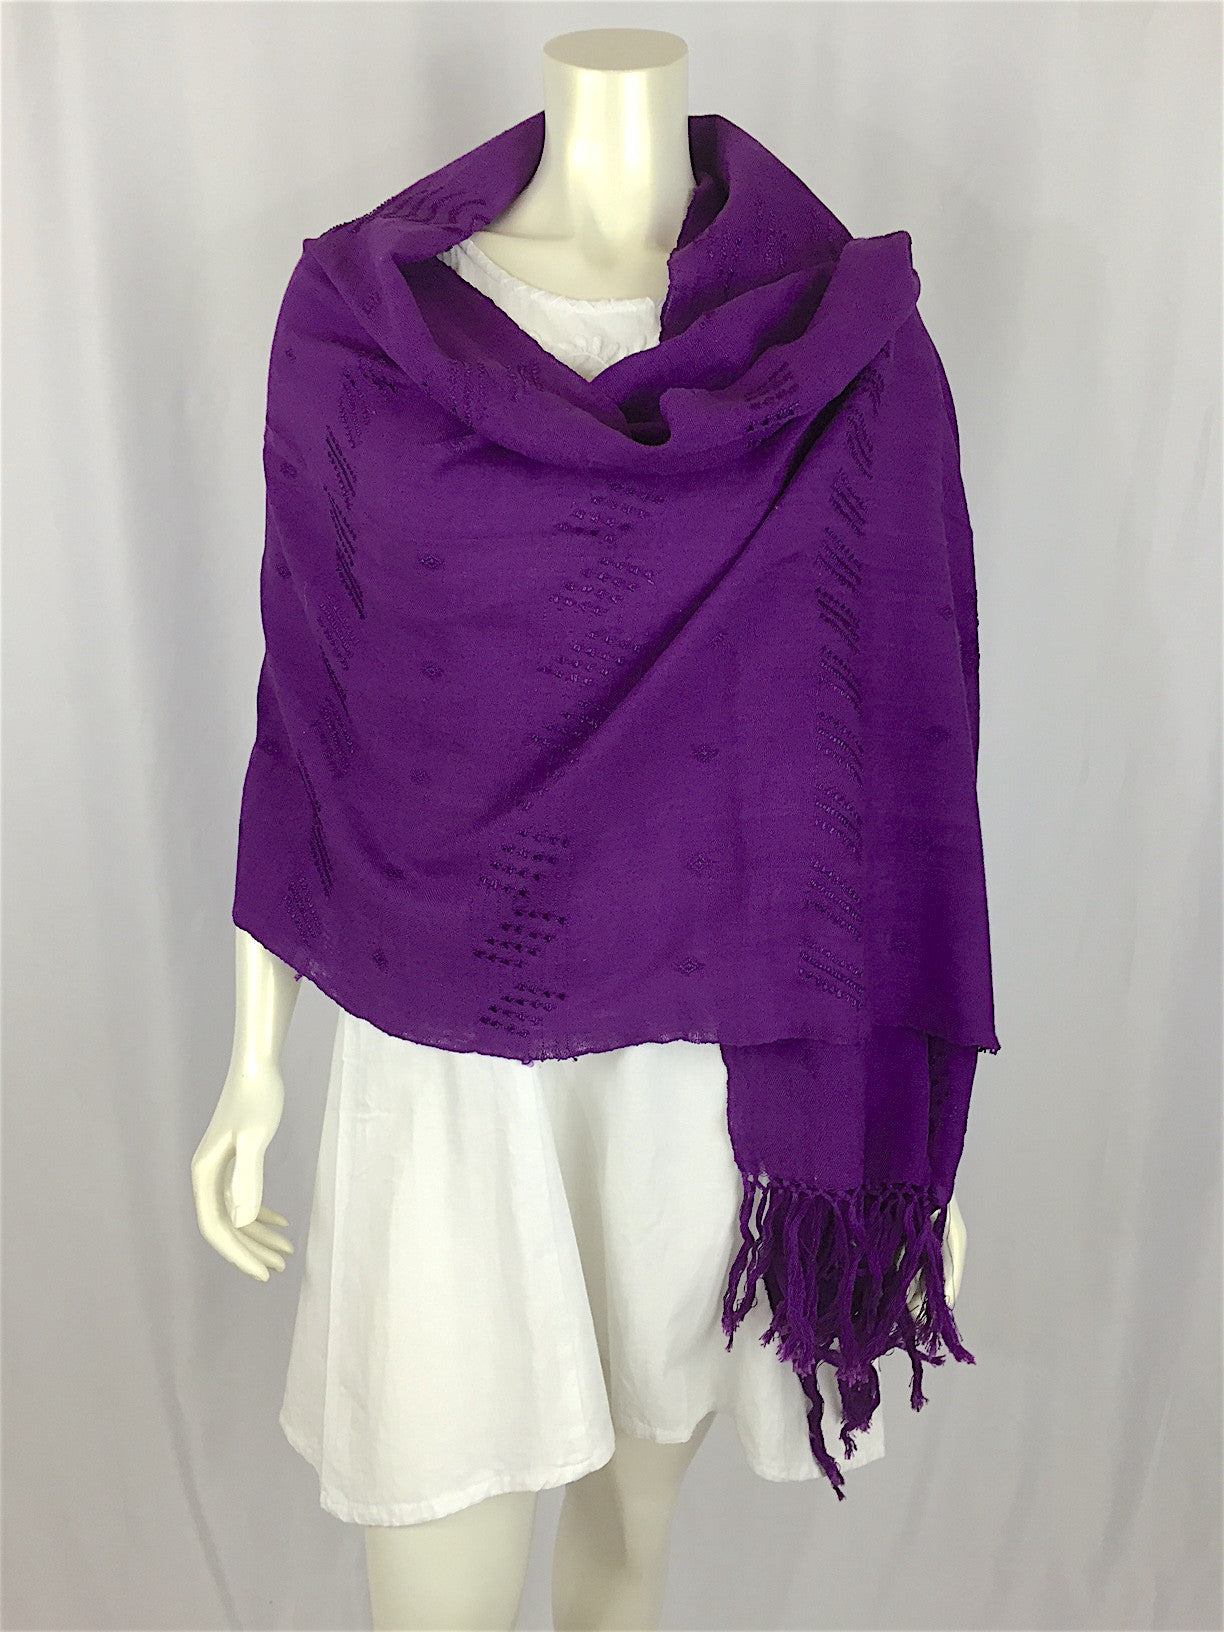 Carranza Handwoven Wrap - purple